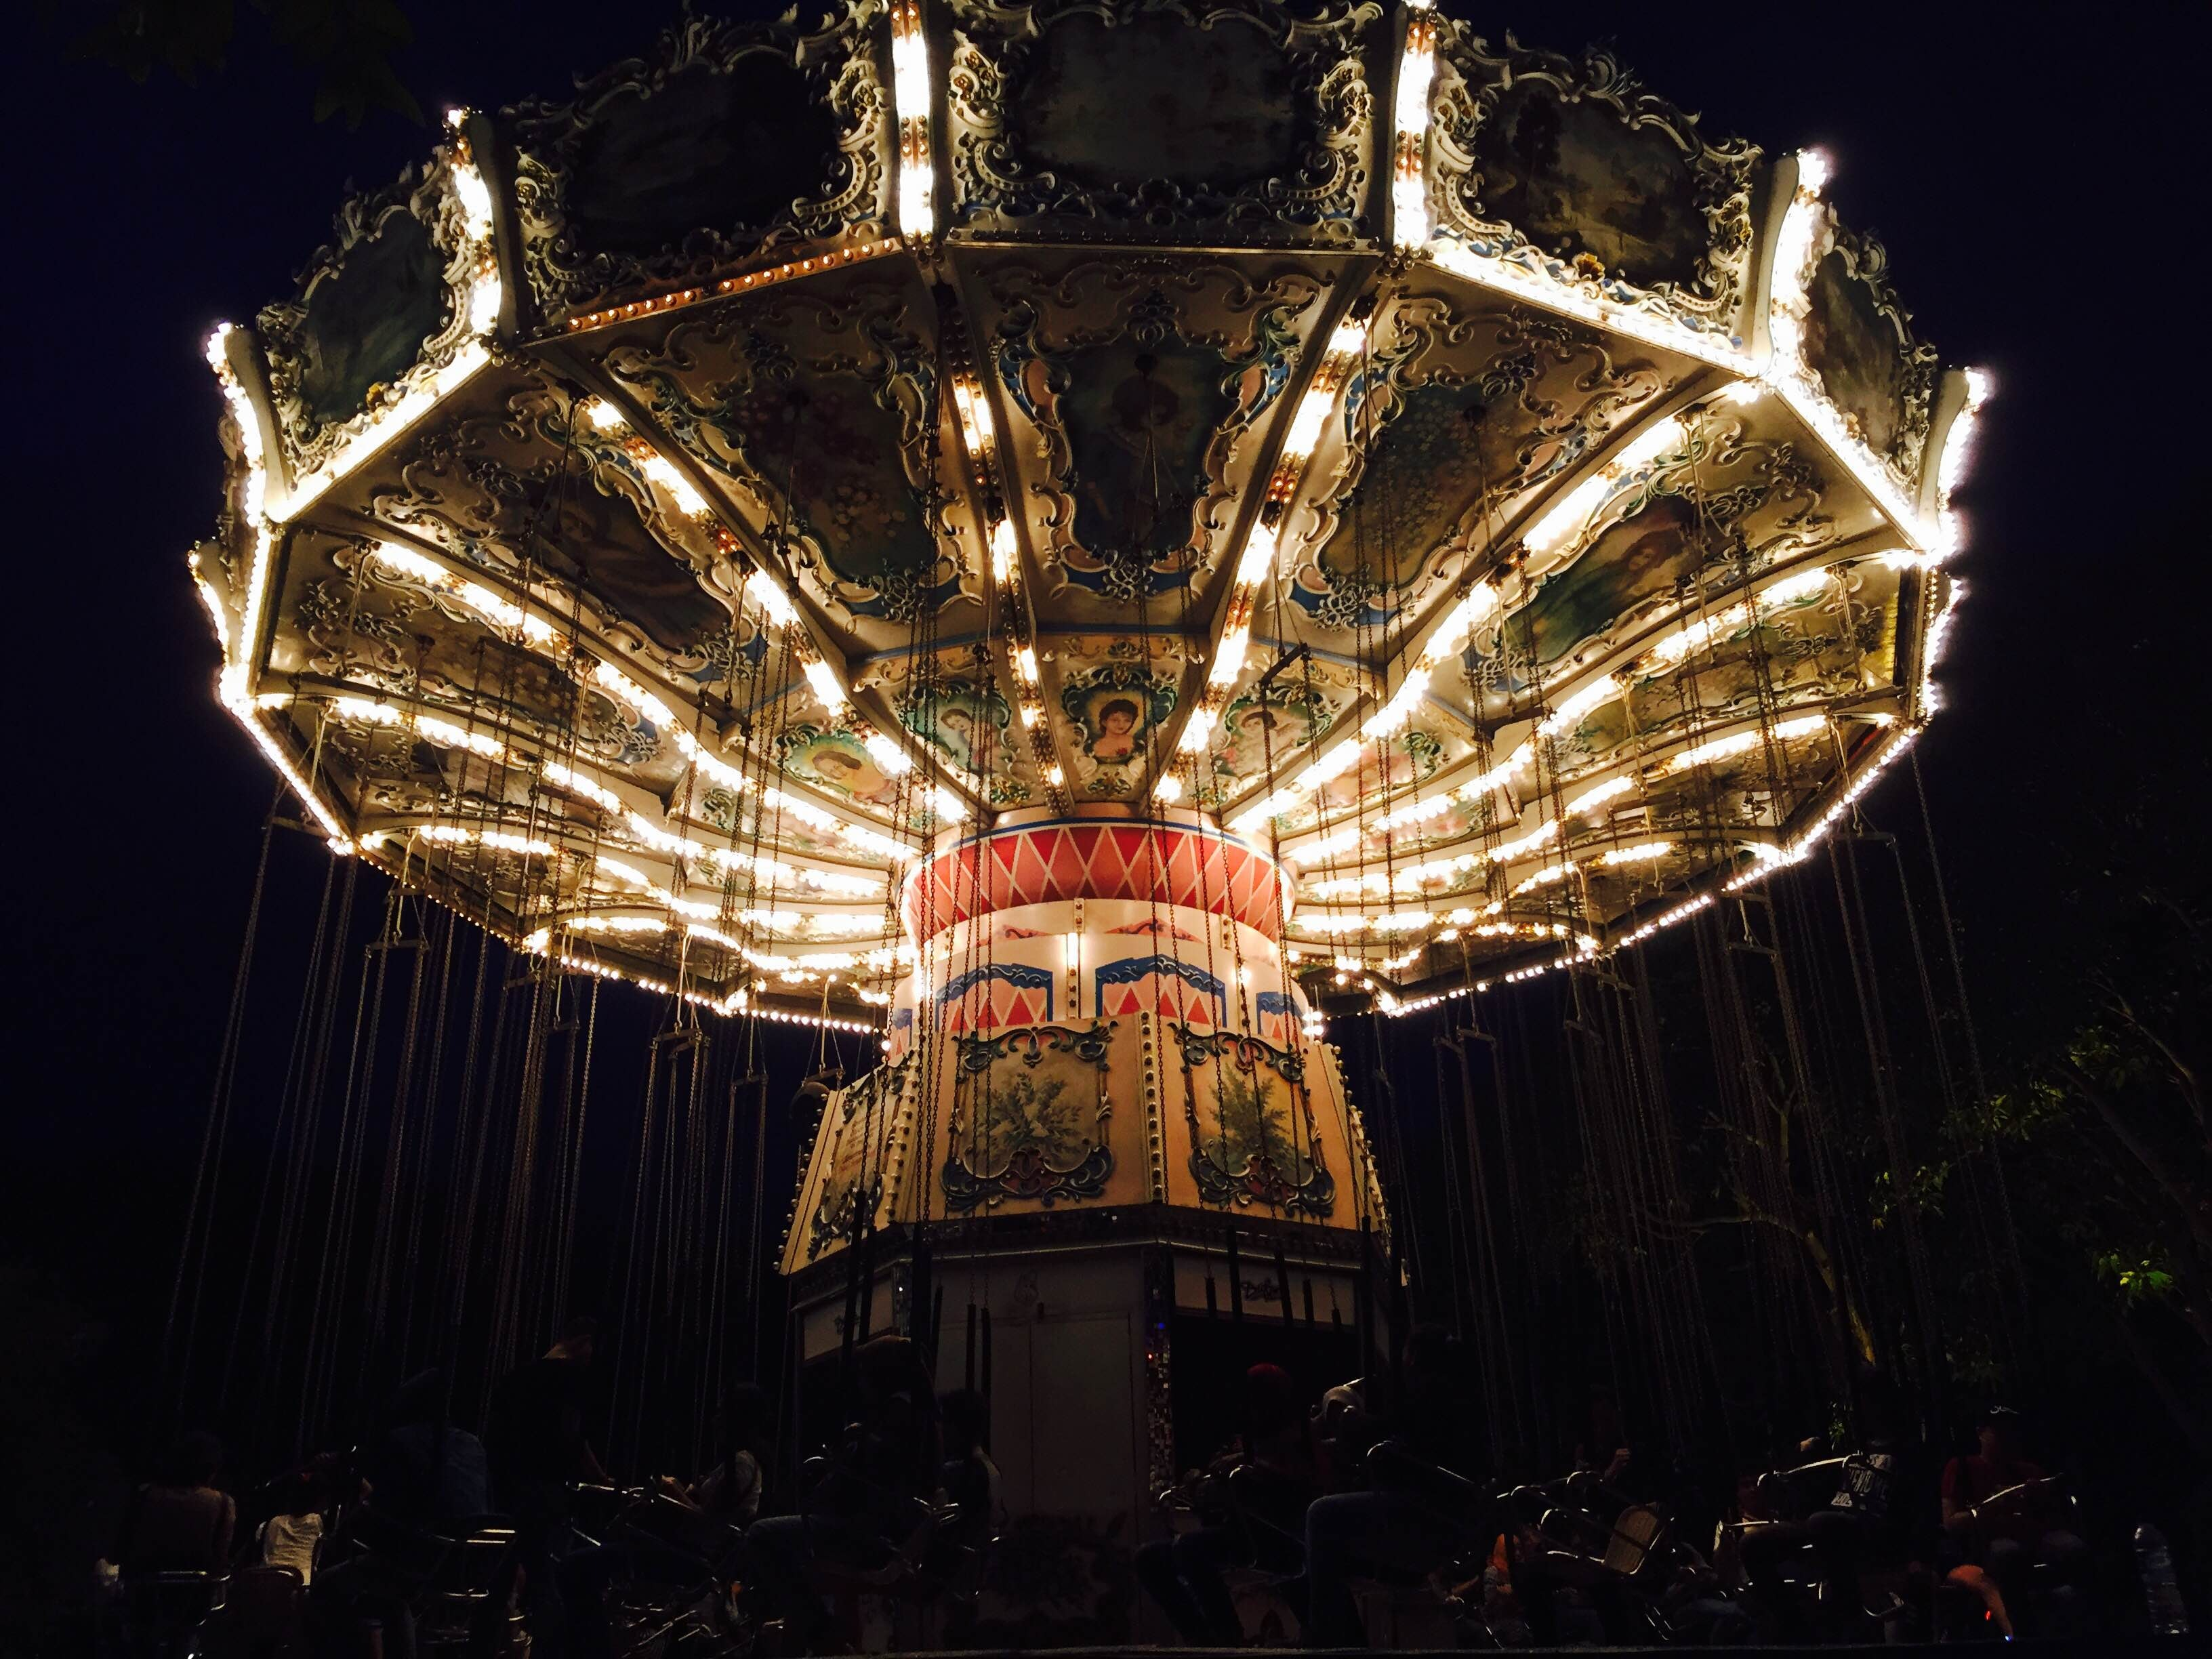 Illuminated carousel photo